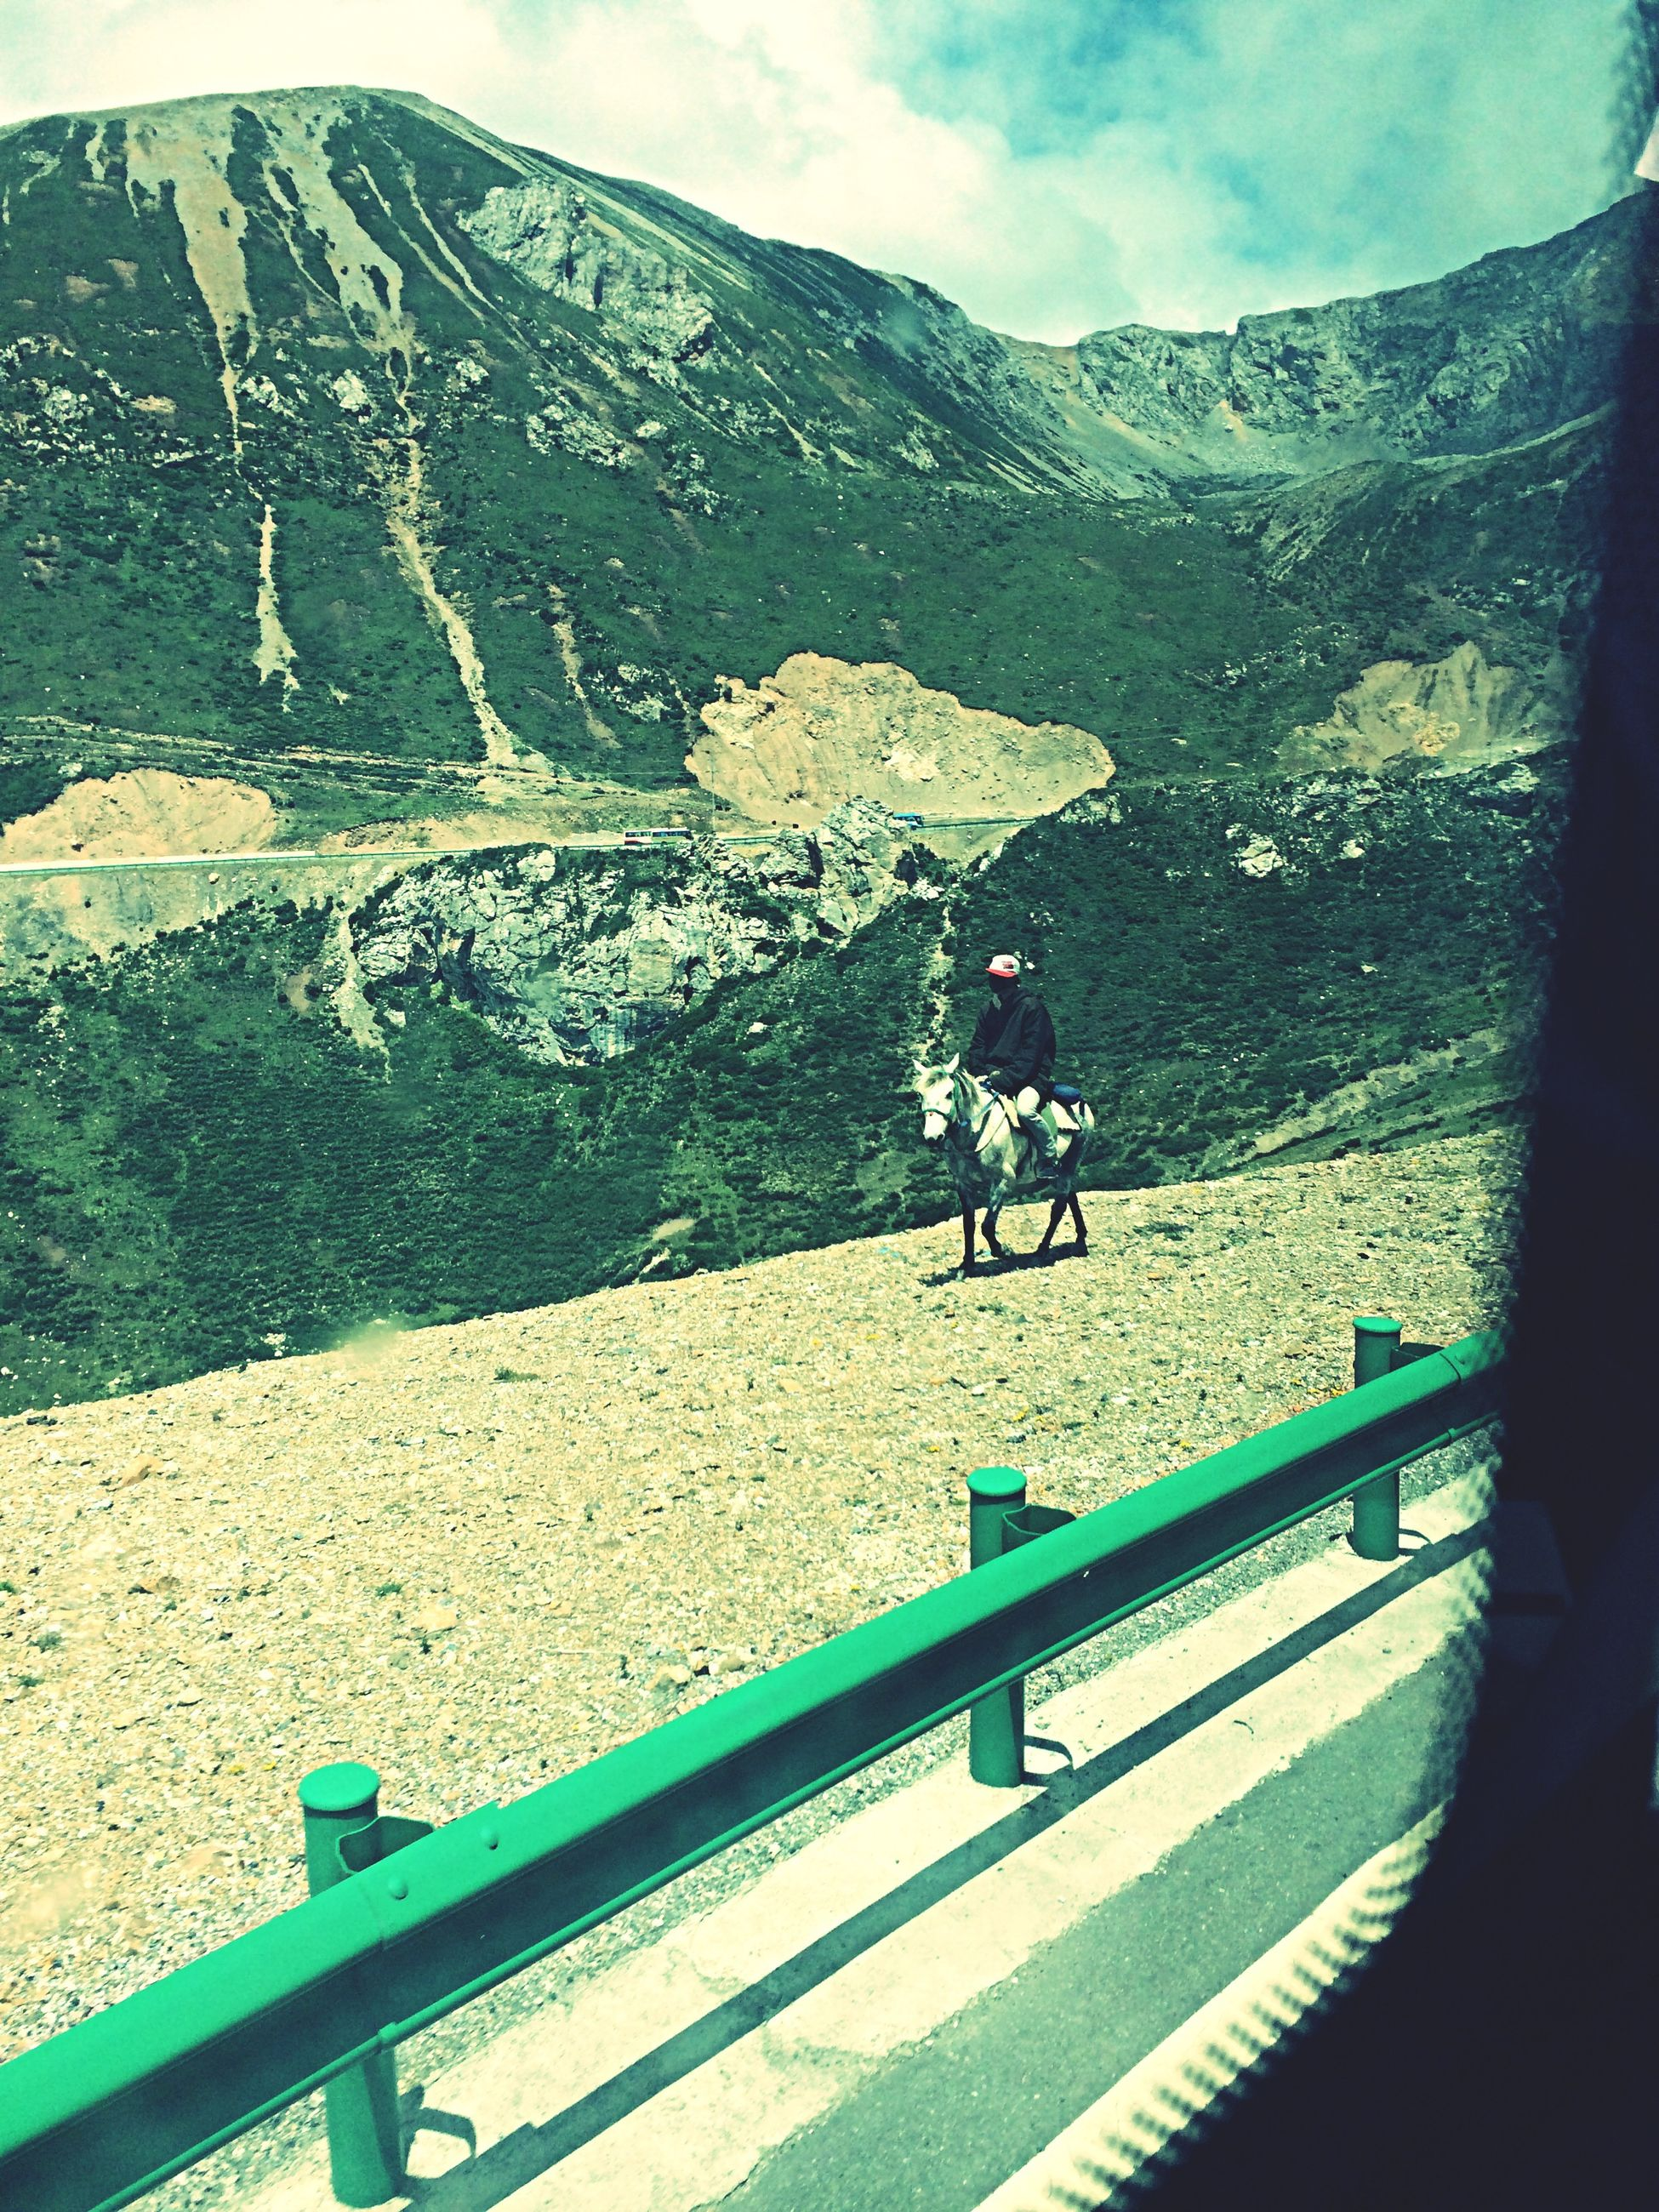 mountain, transportation, sky, railing, road, mountain range, men, nature, mode of transport, lifestyles, high angle view, leisure activity, scenics, beauty in nature, water, travel, tranquility, day, unrecognizable person